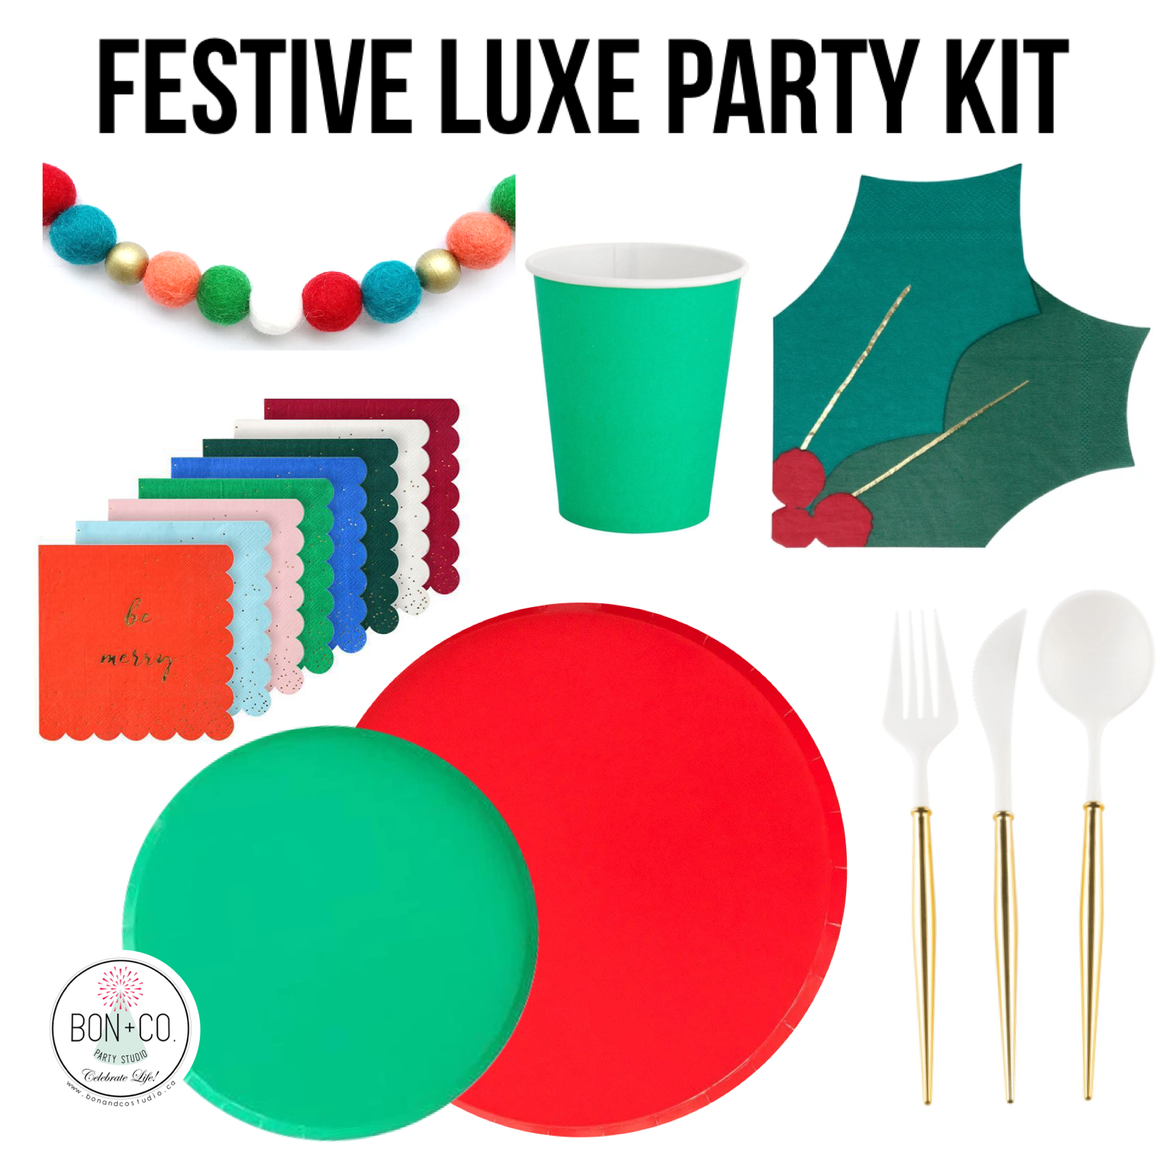 PETITE PARTY KIT LUXE - FESTIVE